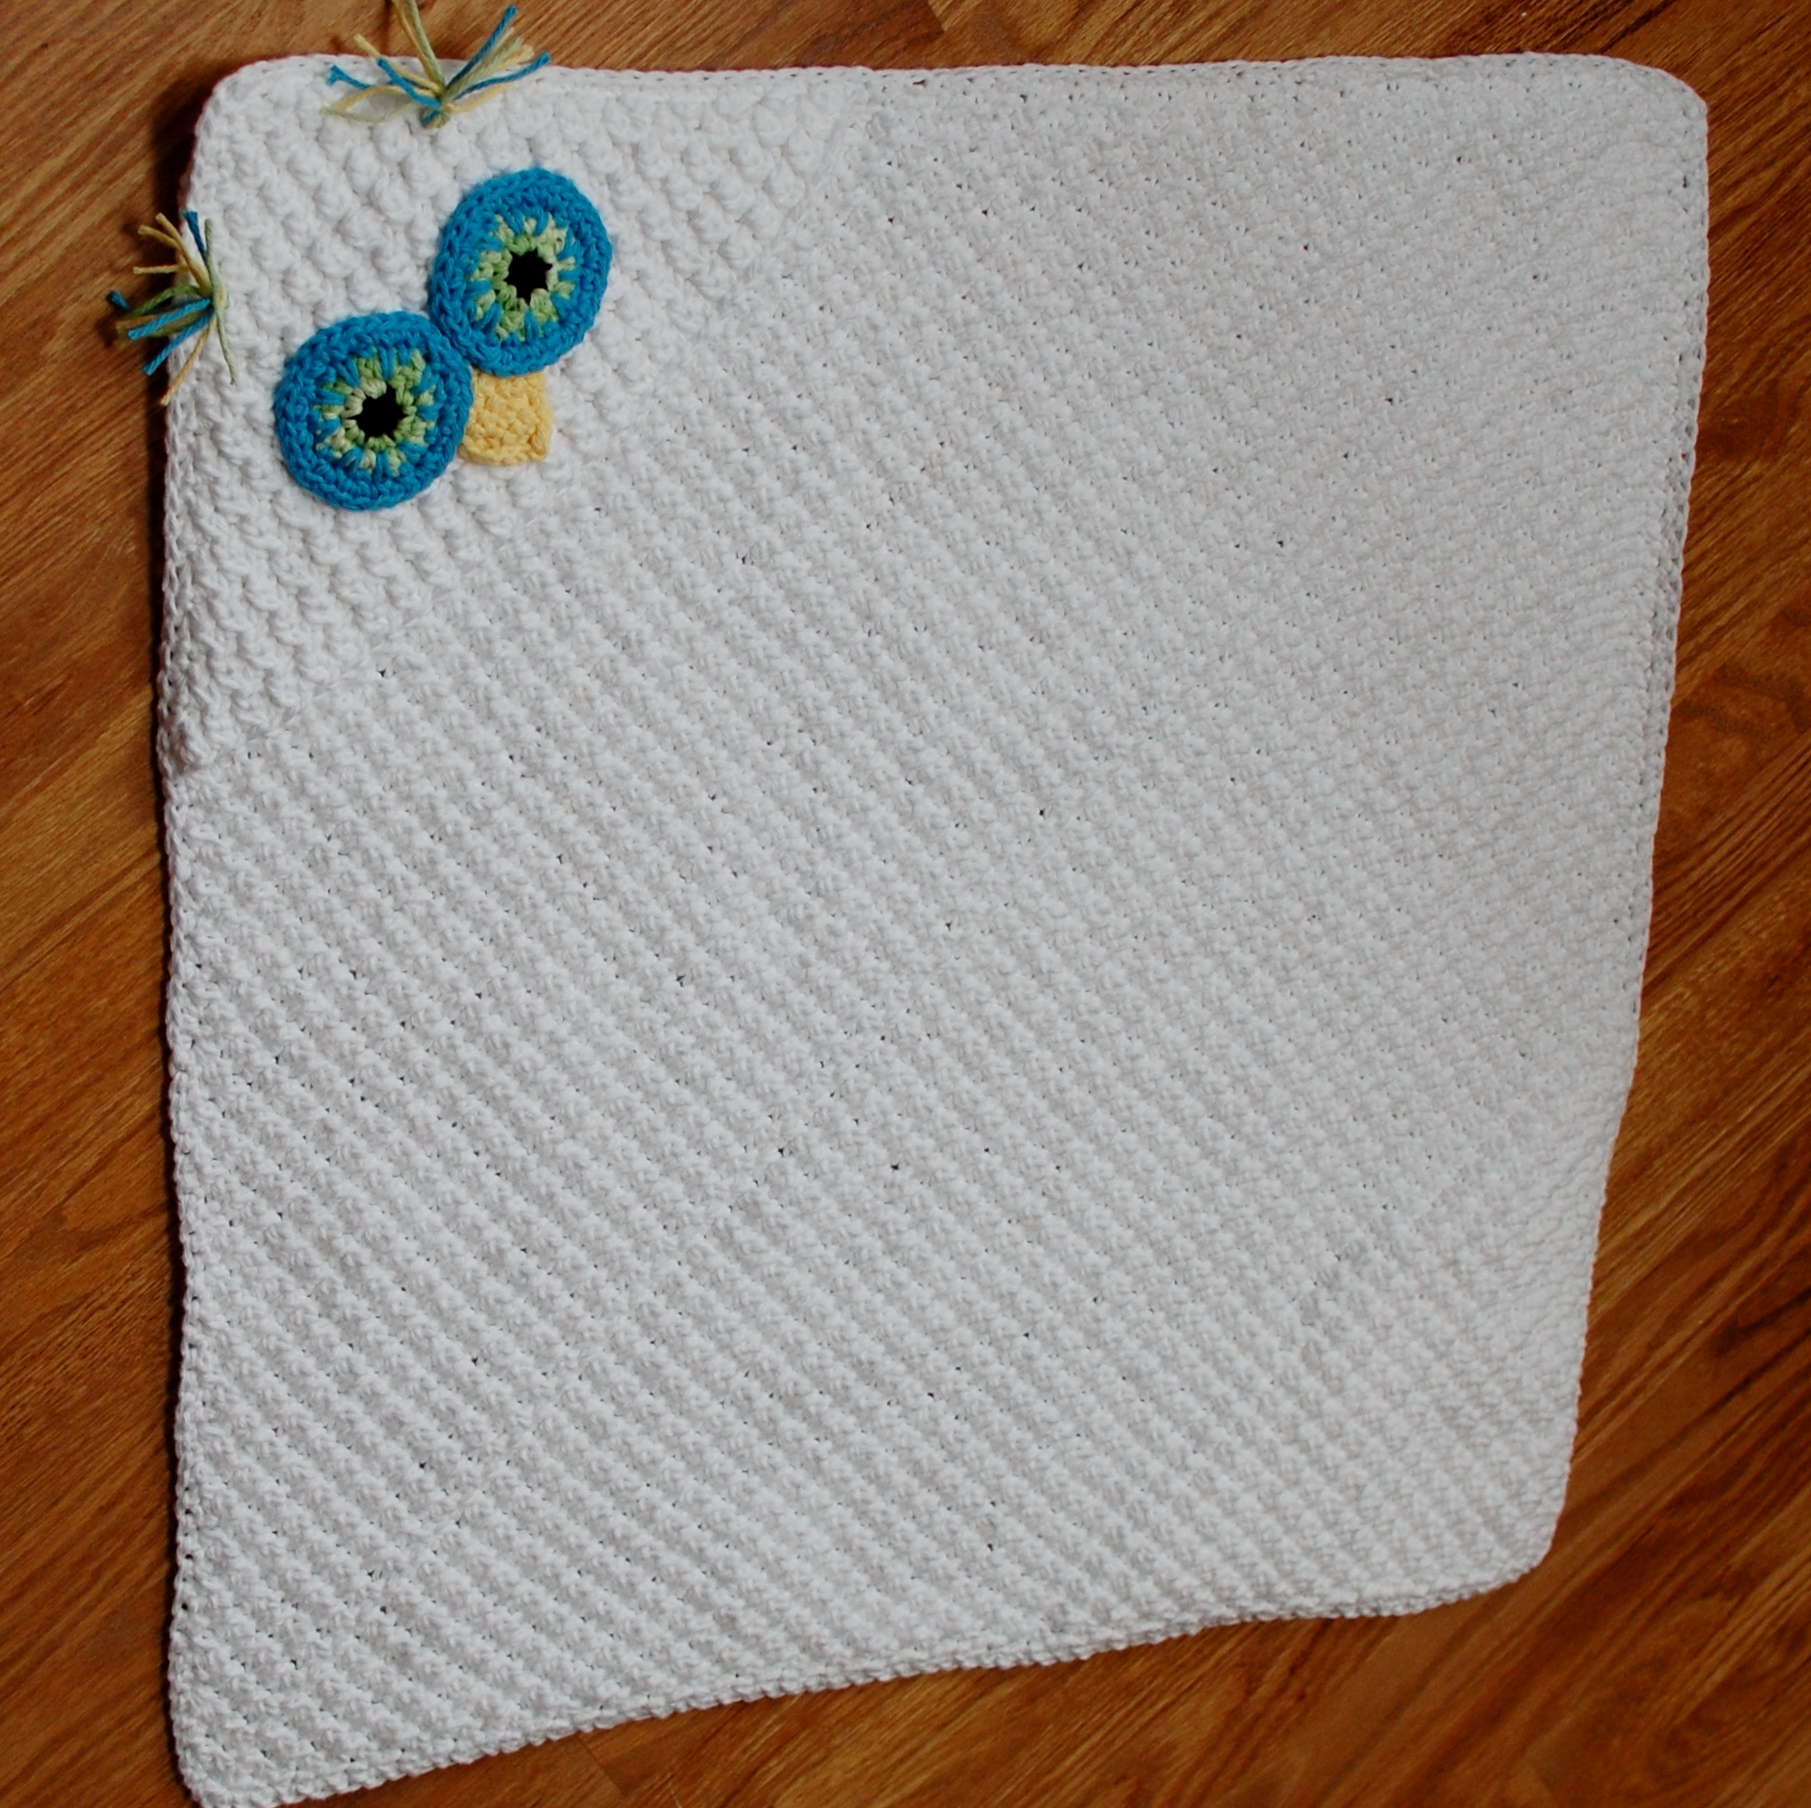 Crochet Pattern For Hooded Blanket : Crochet Pattern - Owl Hooded Baby Towel (also makes a ...